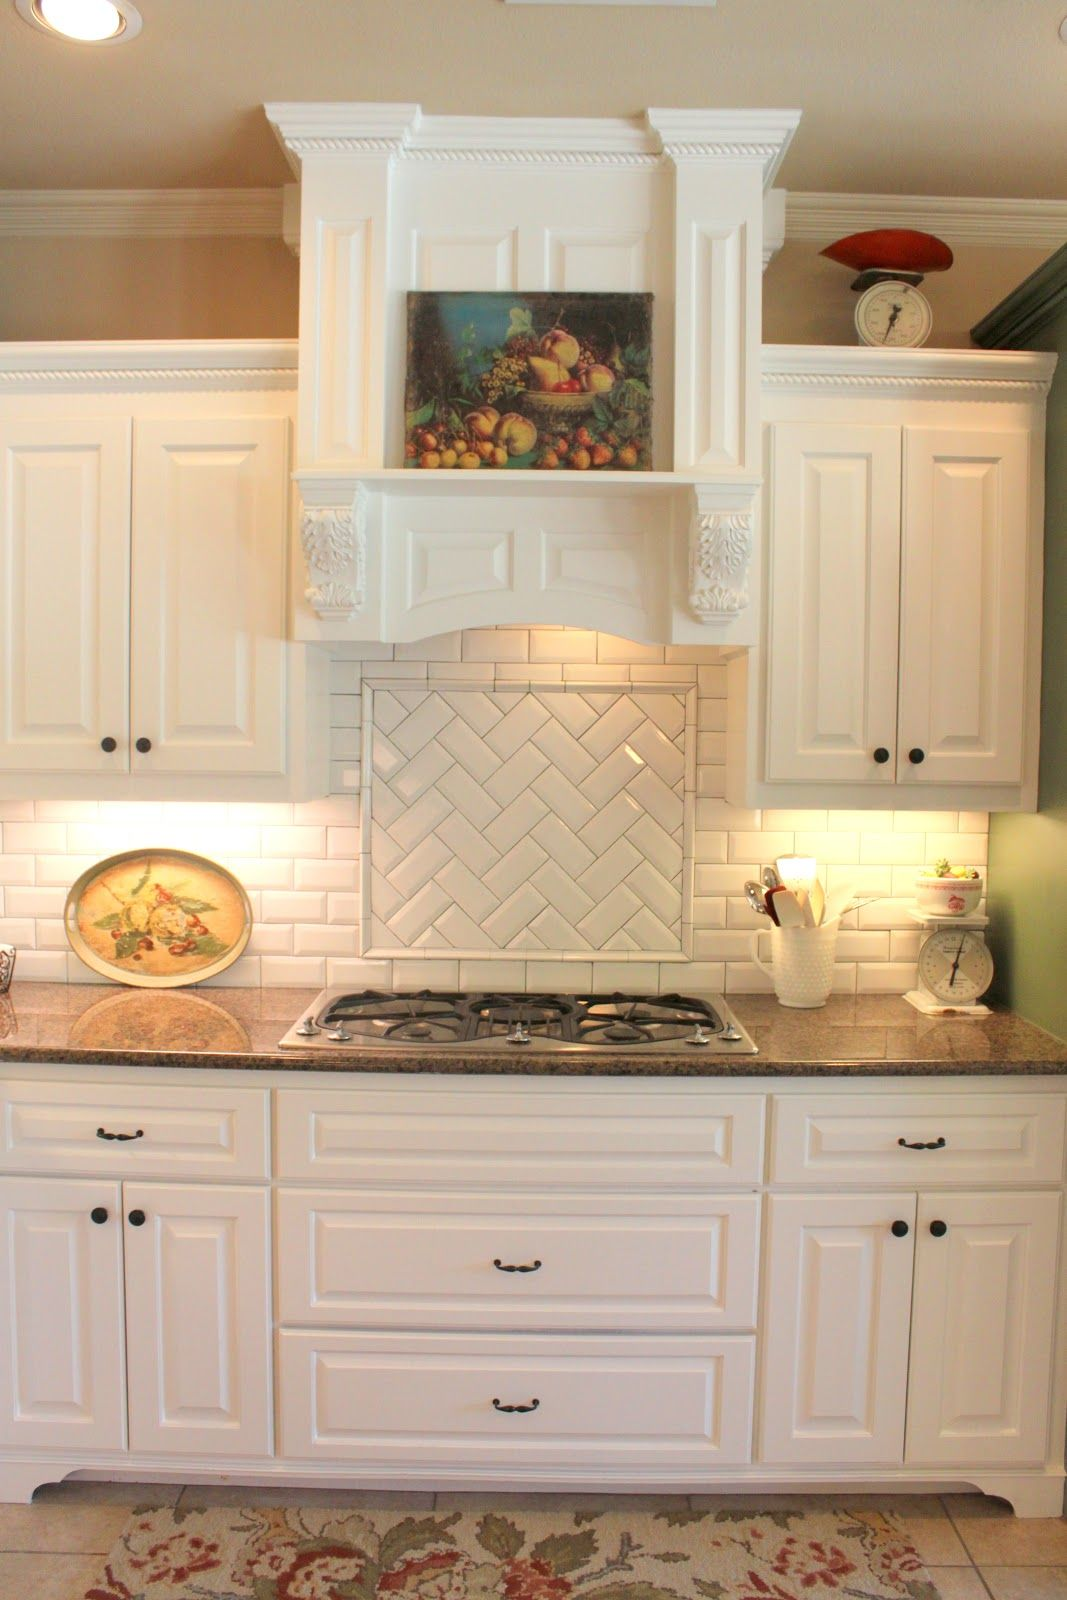 white backsplash subway tiles for your kitchen is one of most ideas for kitchen decoration white backsplash subway tiles for your kitchen will enhance your - White Kitchen With Subway Tile Backsplas